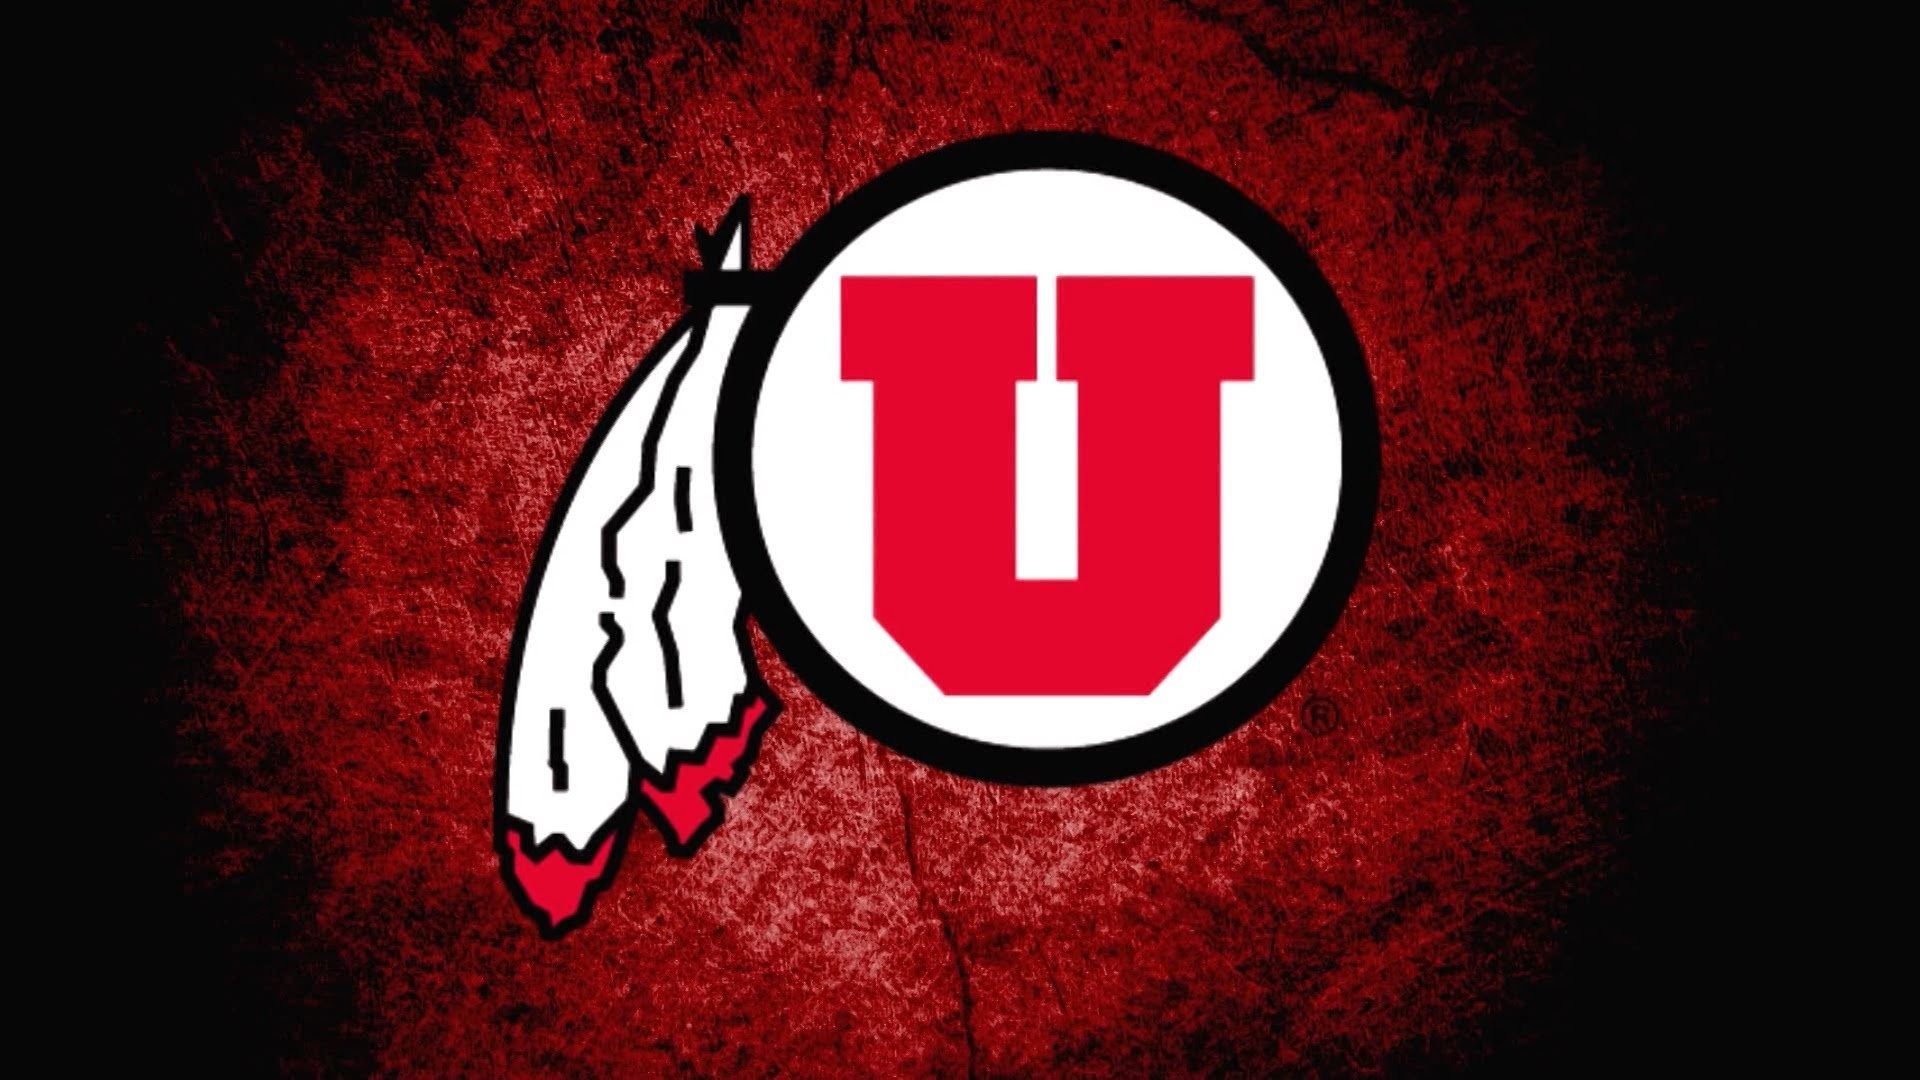 1920x1080 UTAH UTES College Football Wallpaper Background